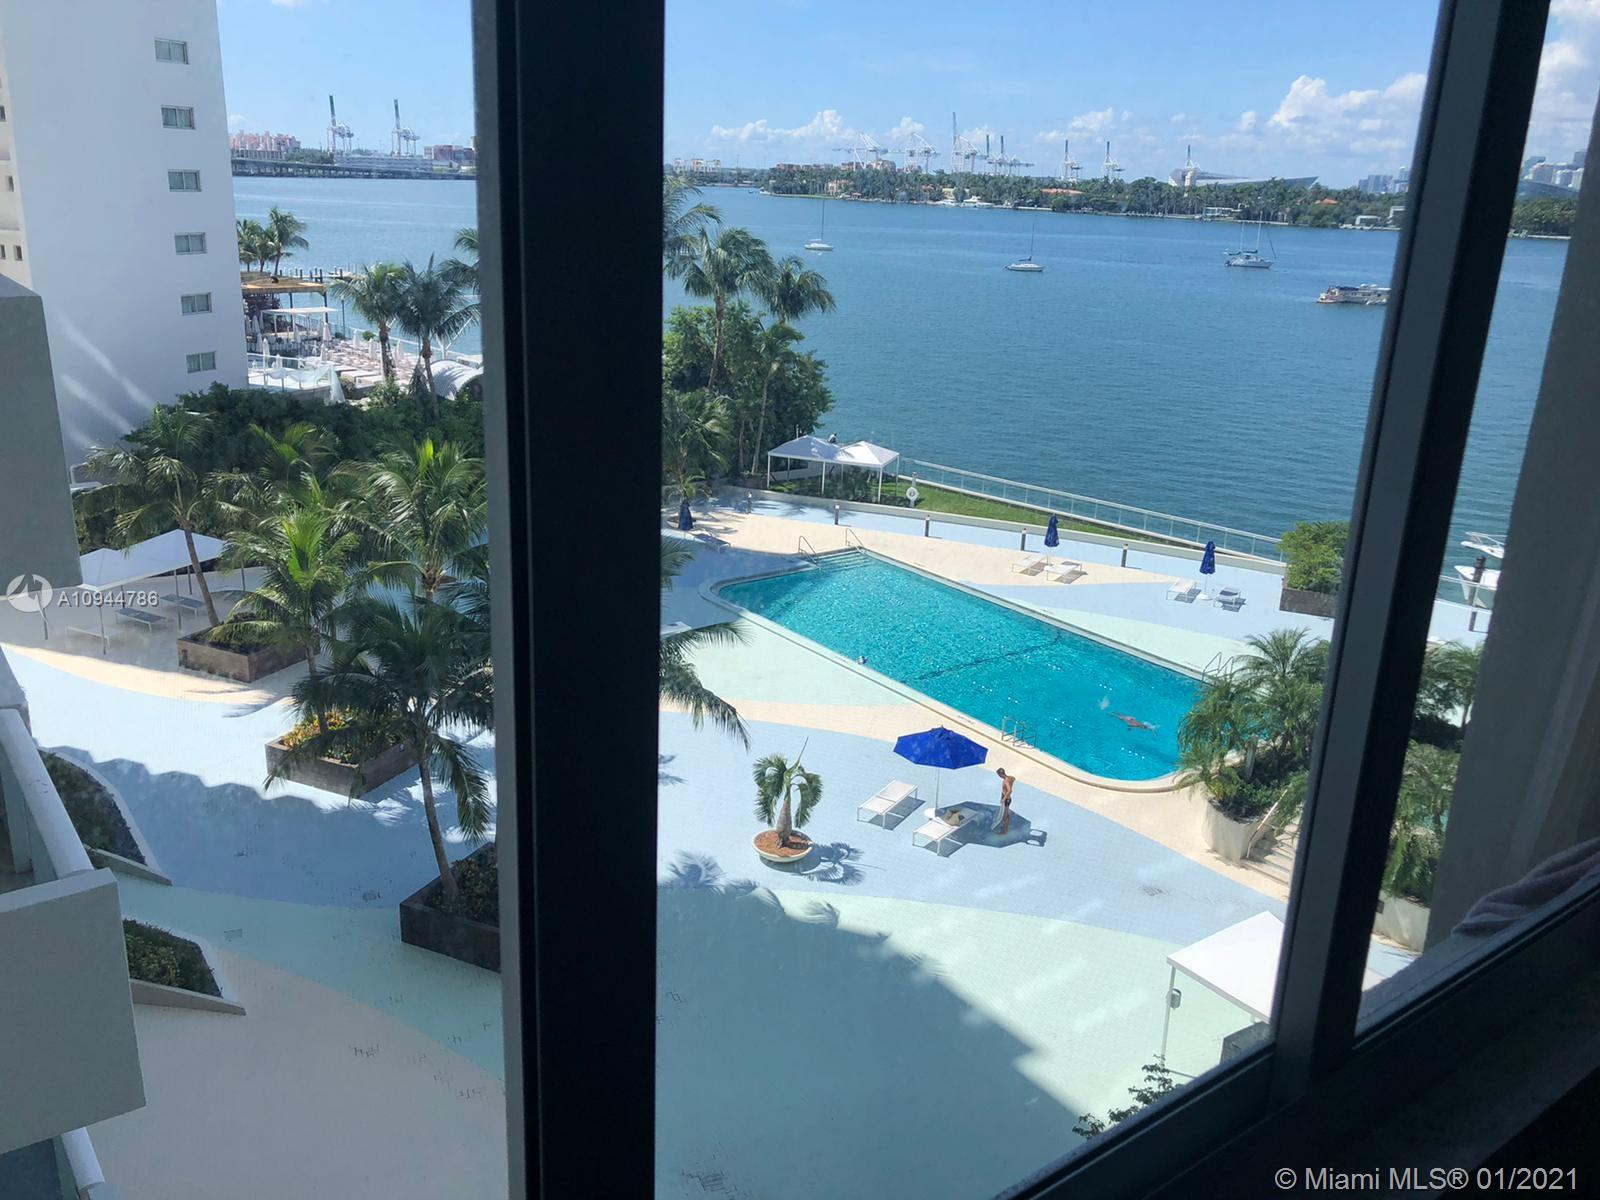 OWNER MOTIVATED!! GREAT DEAL ON THIS VERY LARGE 1BED 1BATH. ALMOST 1000 SFT. GREAT BAY VIEW WITH LARGE HURRICANE IMPACT WINDOWS. UNIT NEEDS SOME TLC WITH KITCHEN AND BATHROOM NEEDED UPDATING. SOME UPGRADES HAVE BEEN DONE TO THE UNIT WITH NEW LUXURY  VINYL PLANK FLOORS AND CENTRAL AC LESS THEN 18 MONTH OLD. VERY EASY TO SHOW PLEASE CALL OR TEXT REALTOR.